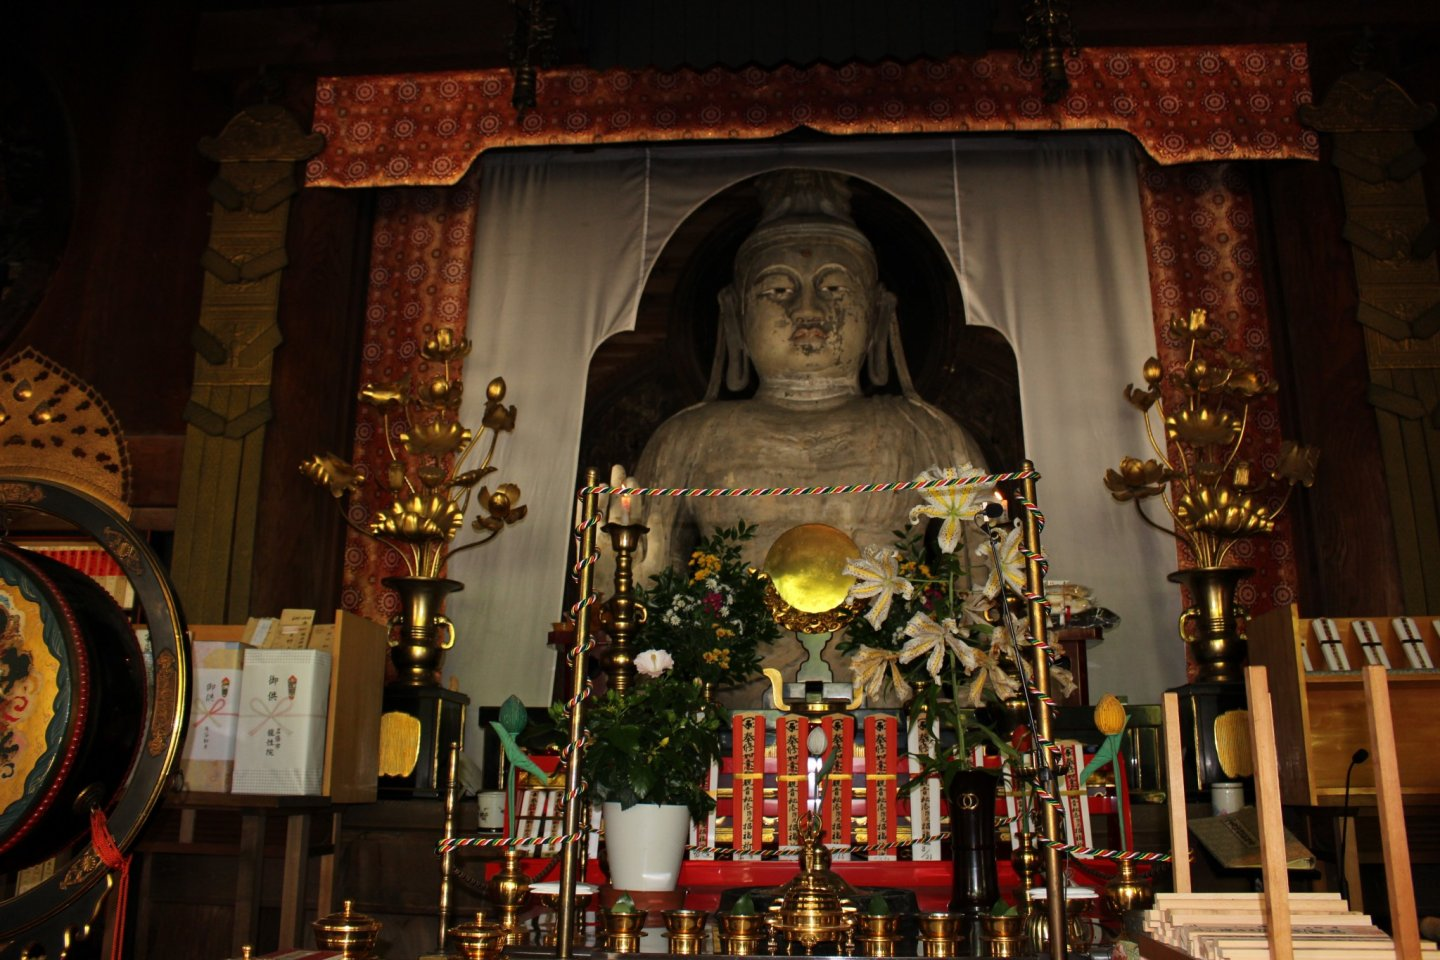 The Nyoirin Kannon Bosatsu (Wish Granting Buddha) of Okadera. It's made of clay and is nearly 1300 years old (the oldest clay Buddha in Japan). The face and body of the Buddha is sculpted to show a Buddha of Indian origin indicating where the practices and influences of the artists and Okadera were sourced.